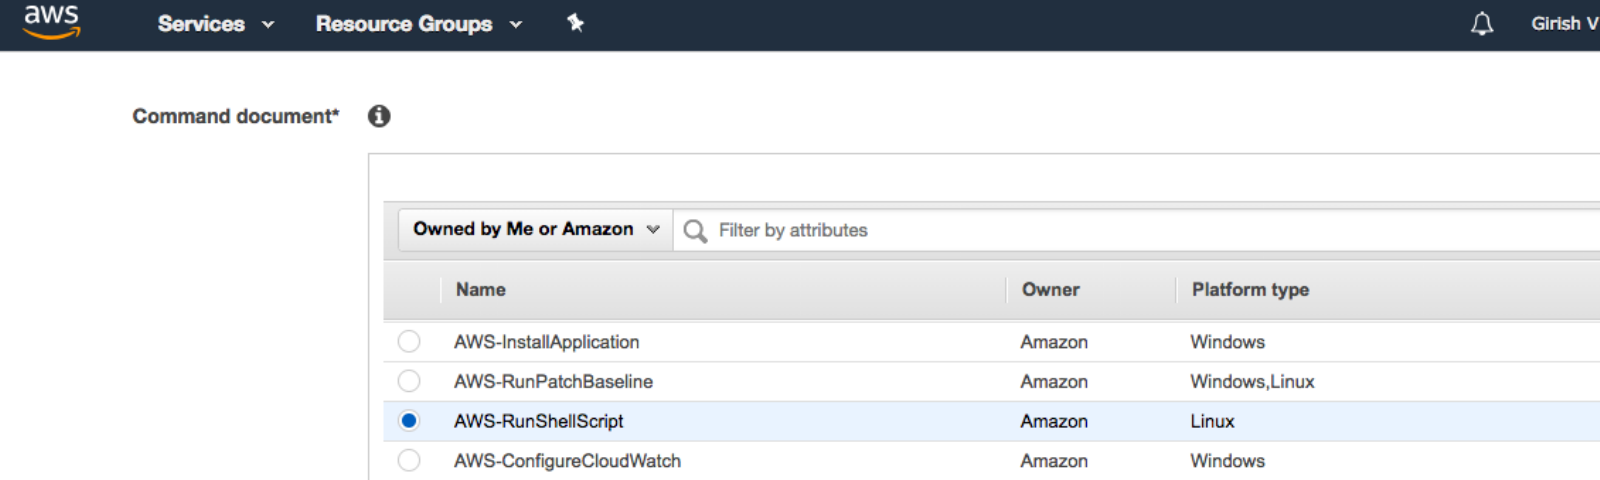 Managing Windows and Linux Without logging in — Bastion Free AWS SSM